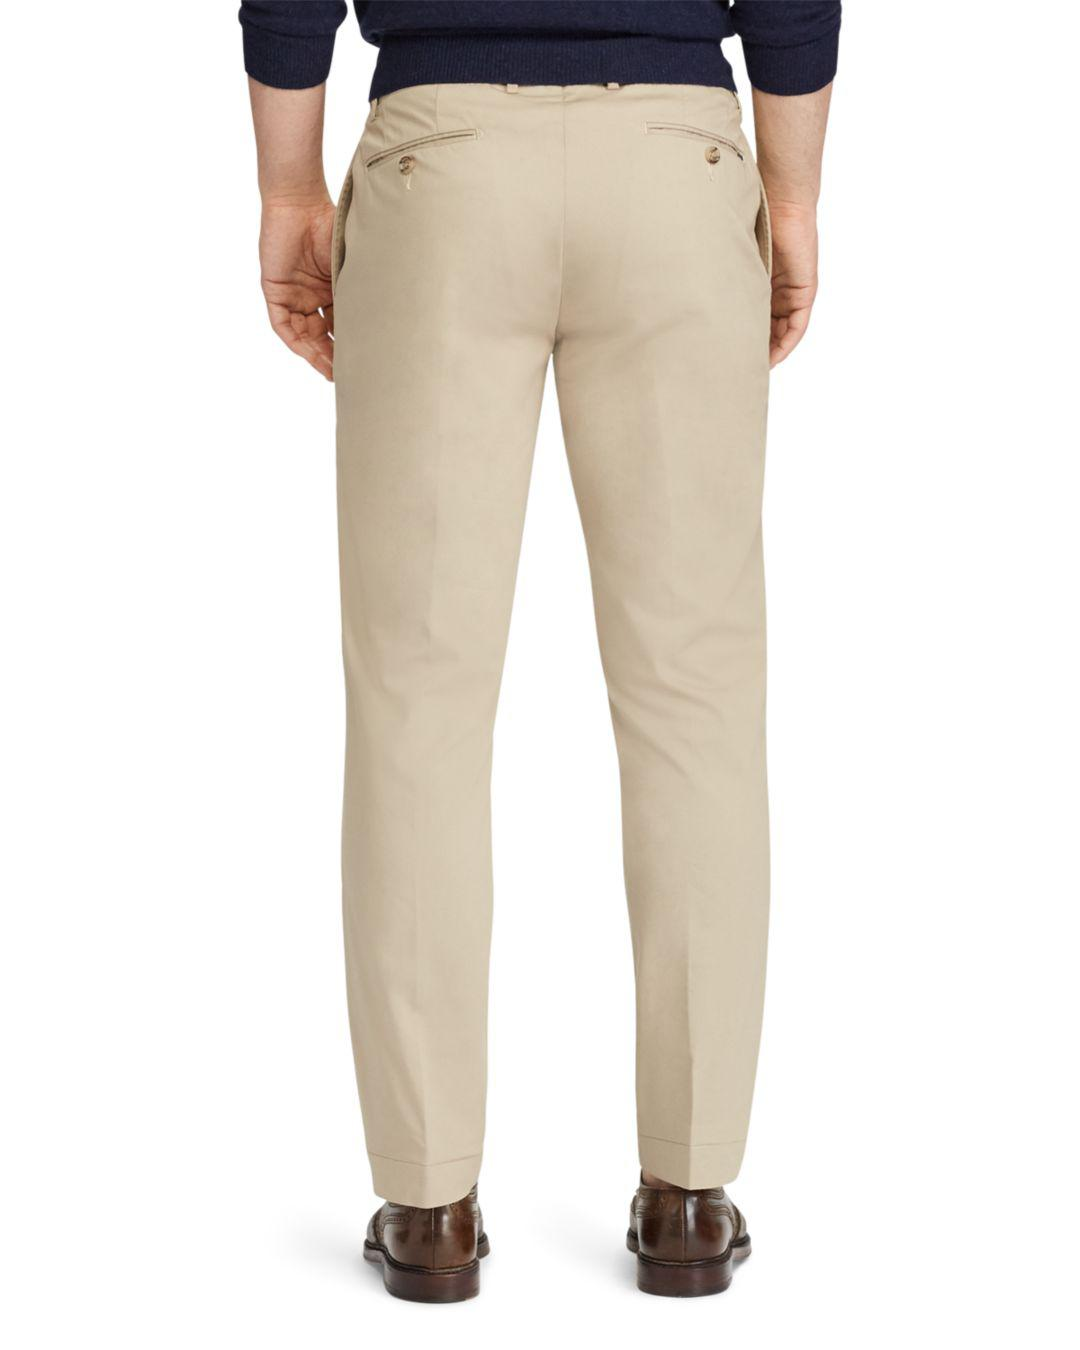 dca71de1a Lyst - Polo Ralph Lauren Performance Stretch Straight Fit Chinos in Natural  for Men